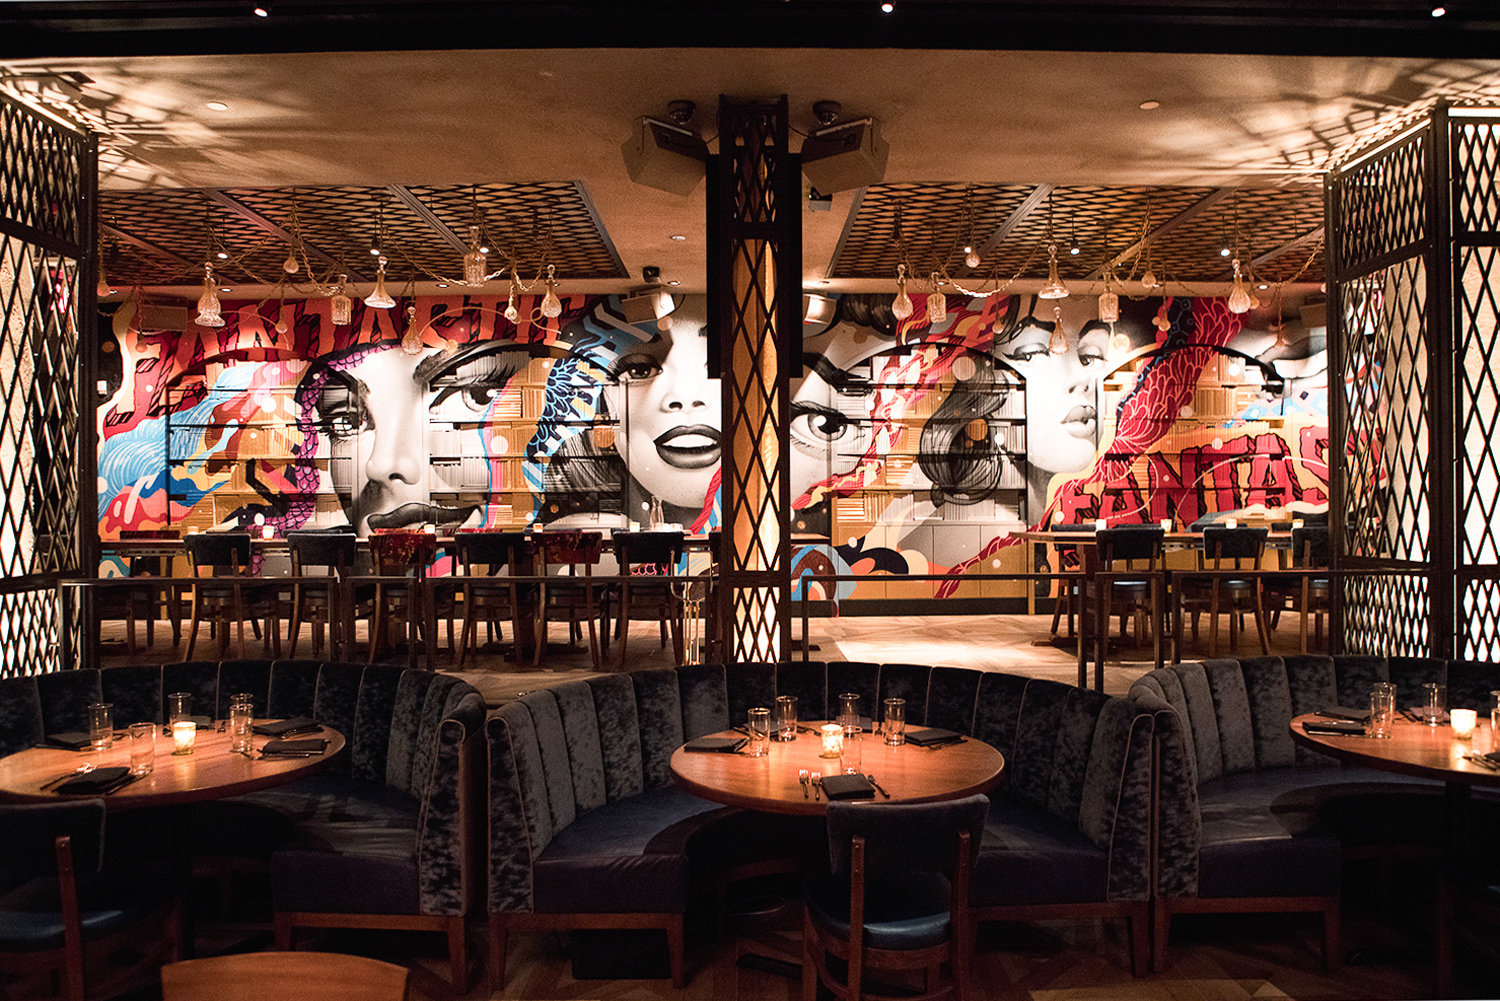 Vandal restaurant by tao group new york the vandallist